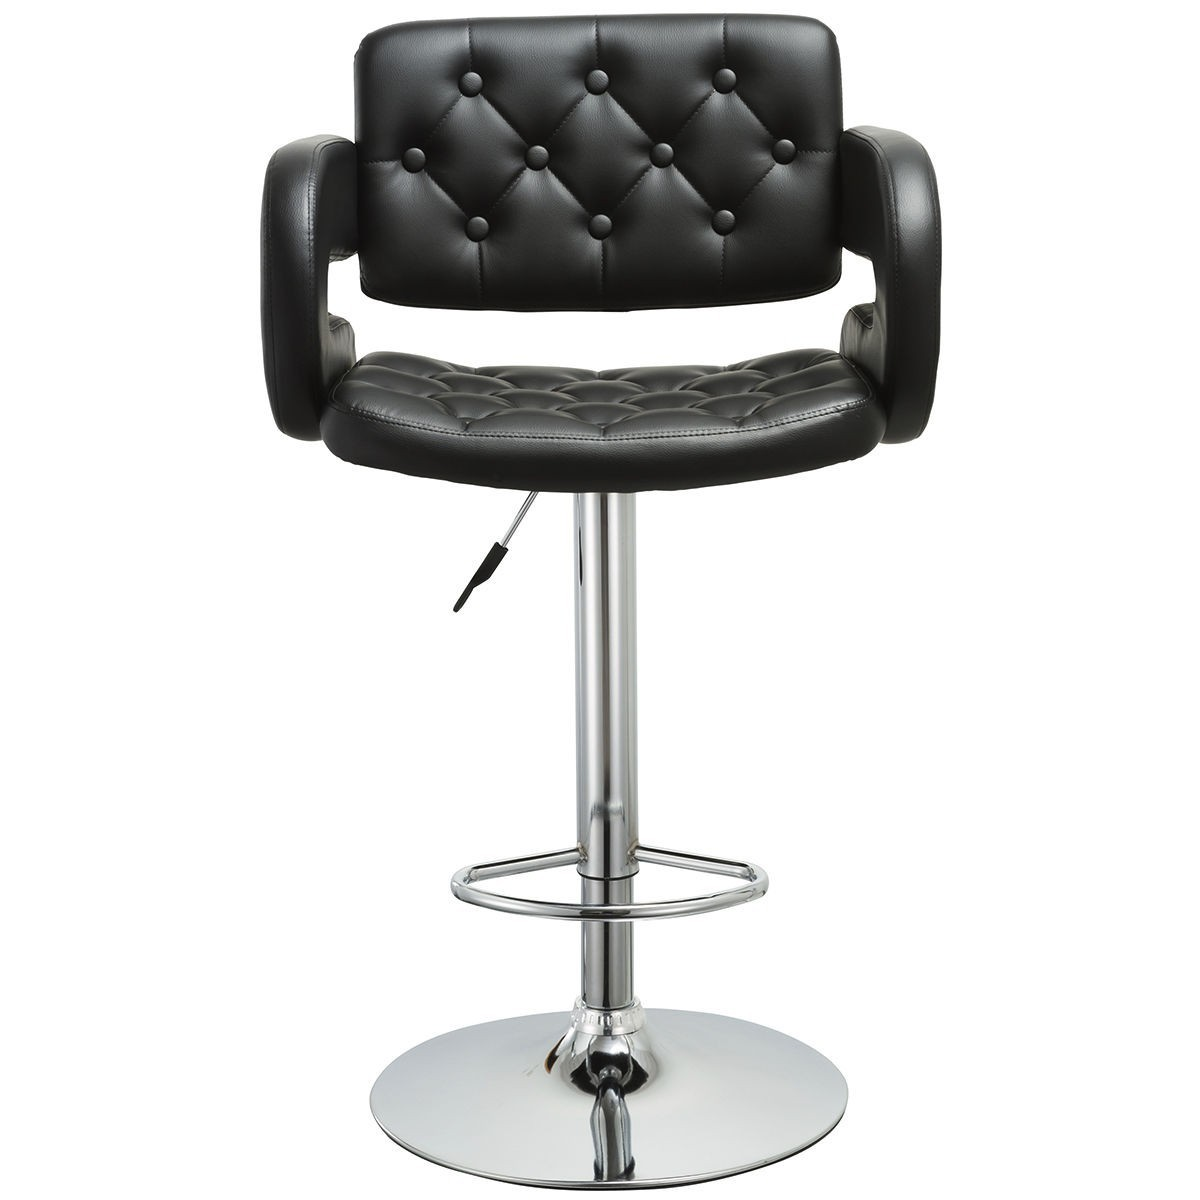 2 pcs PU Leather Adjustable Pub Chair Bar Stool Black by